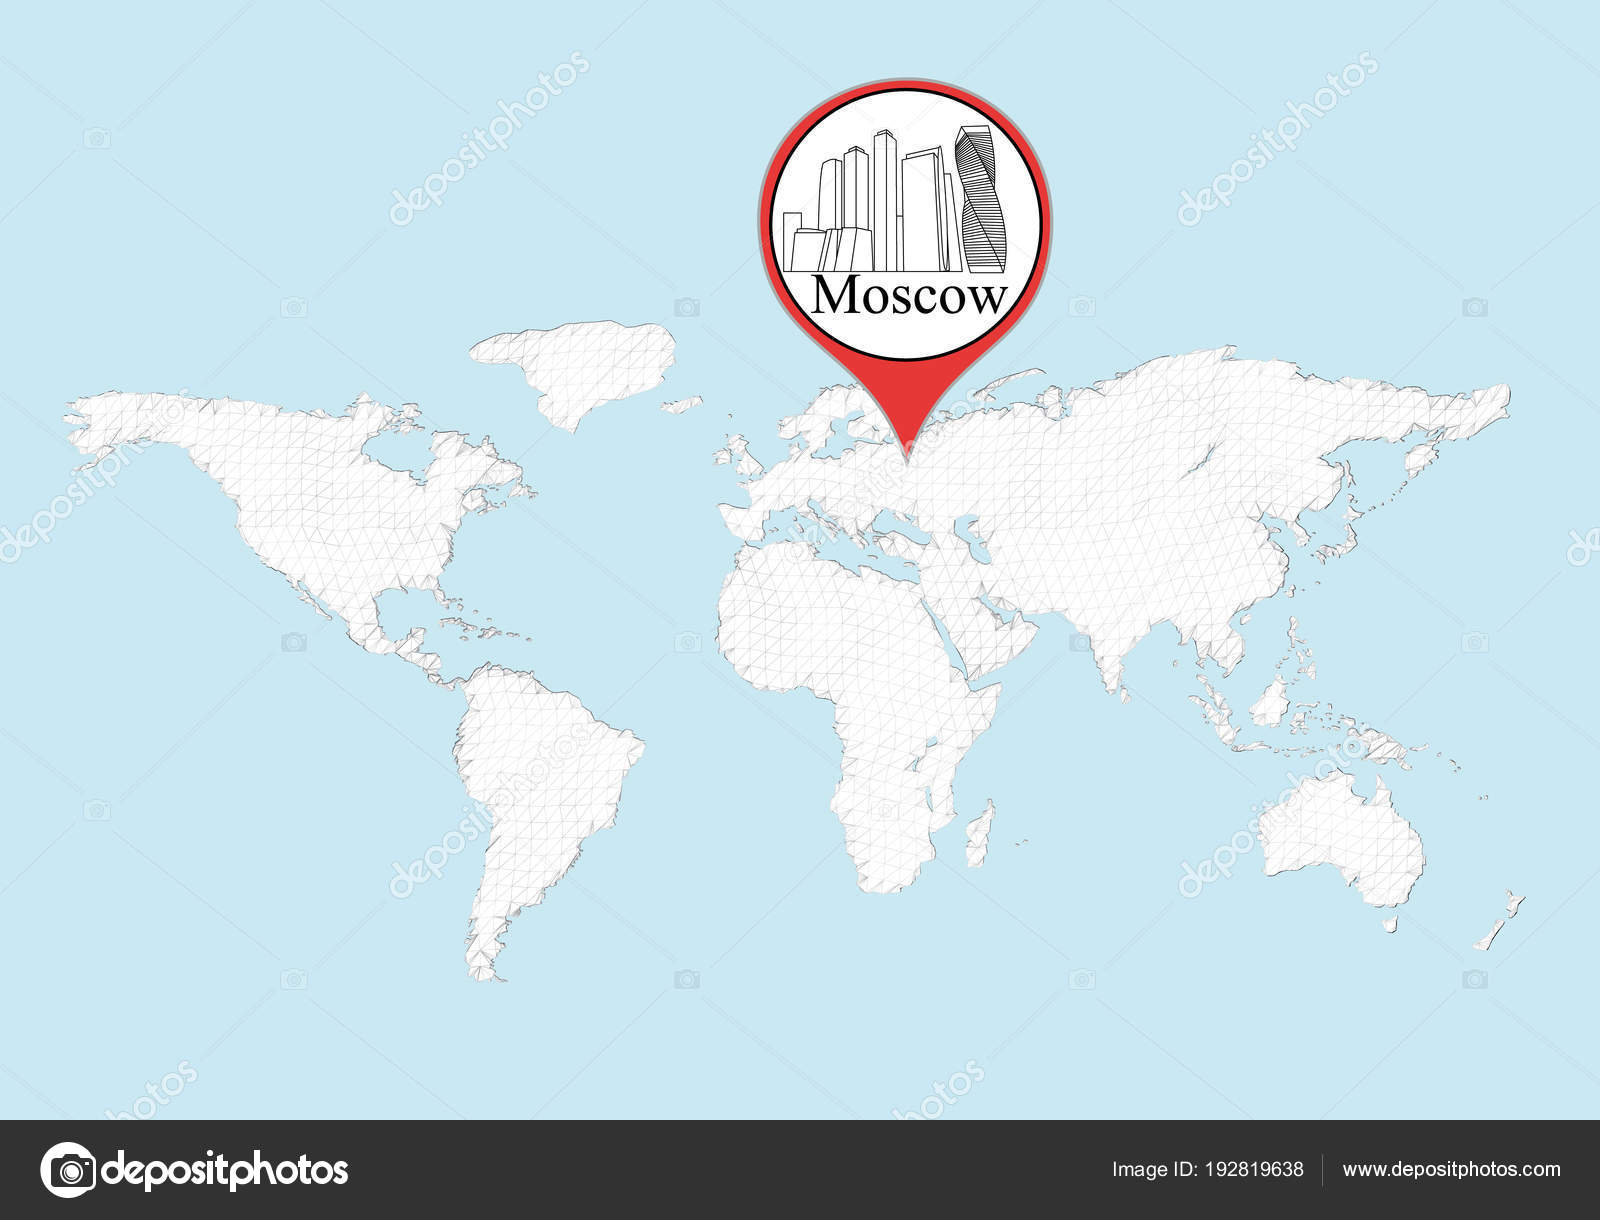 Moscow on the world map — Stock Vector © Slim3D1 #192819638